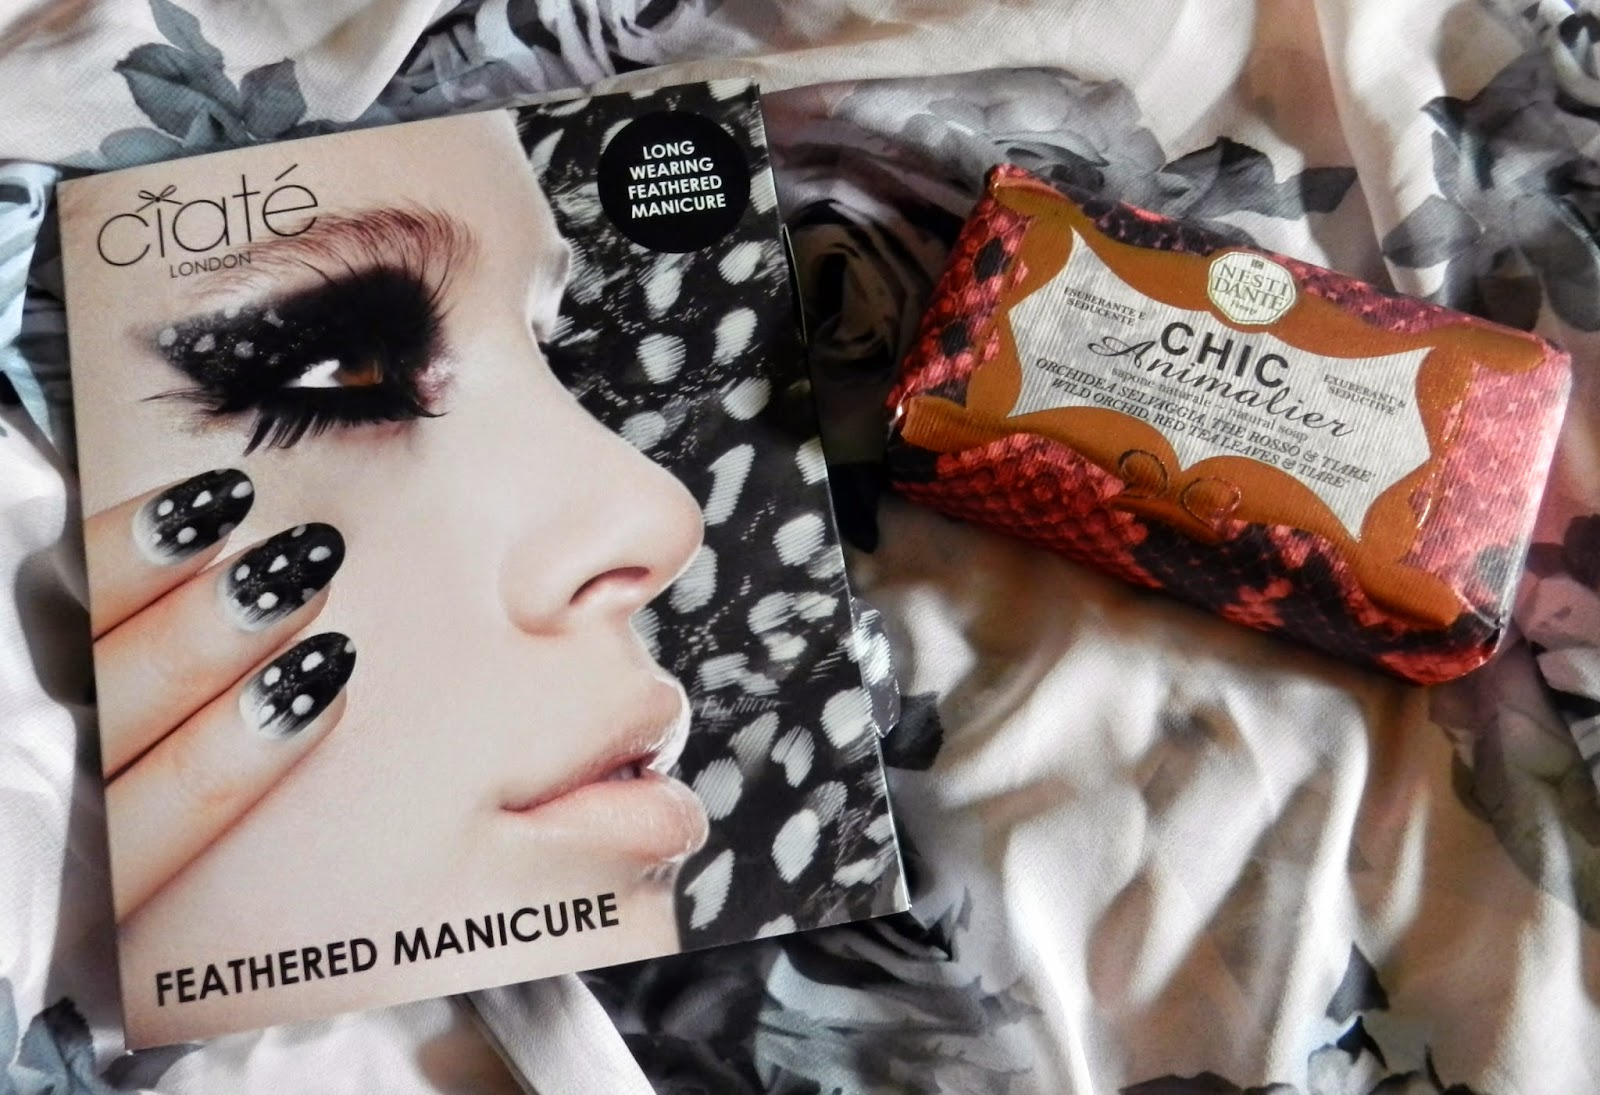 Ciaté Feathered Manicure kit & Nesti Dante Chic Animalier Soap